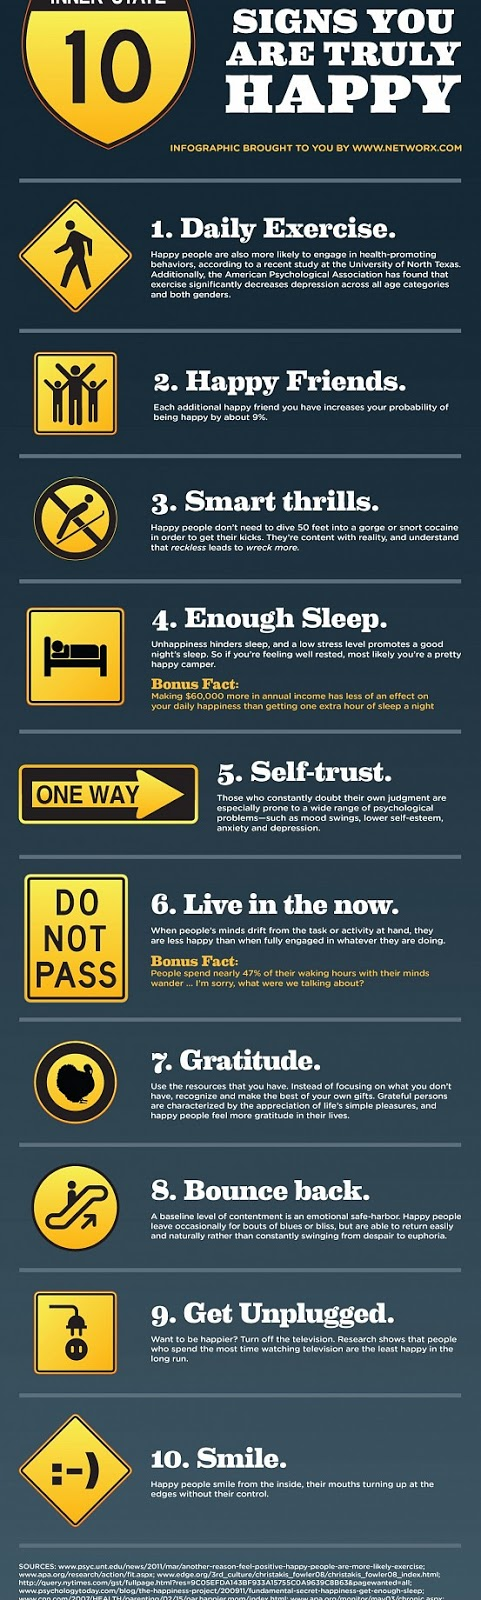 10 signs of happiness